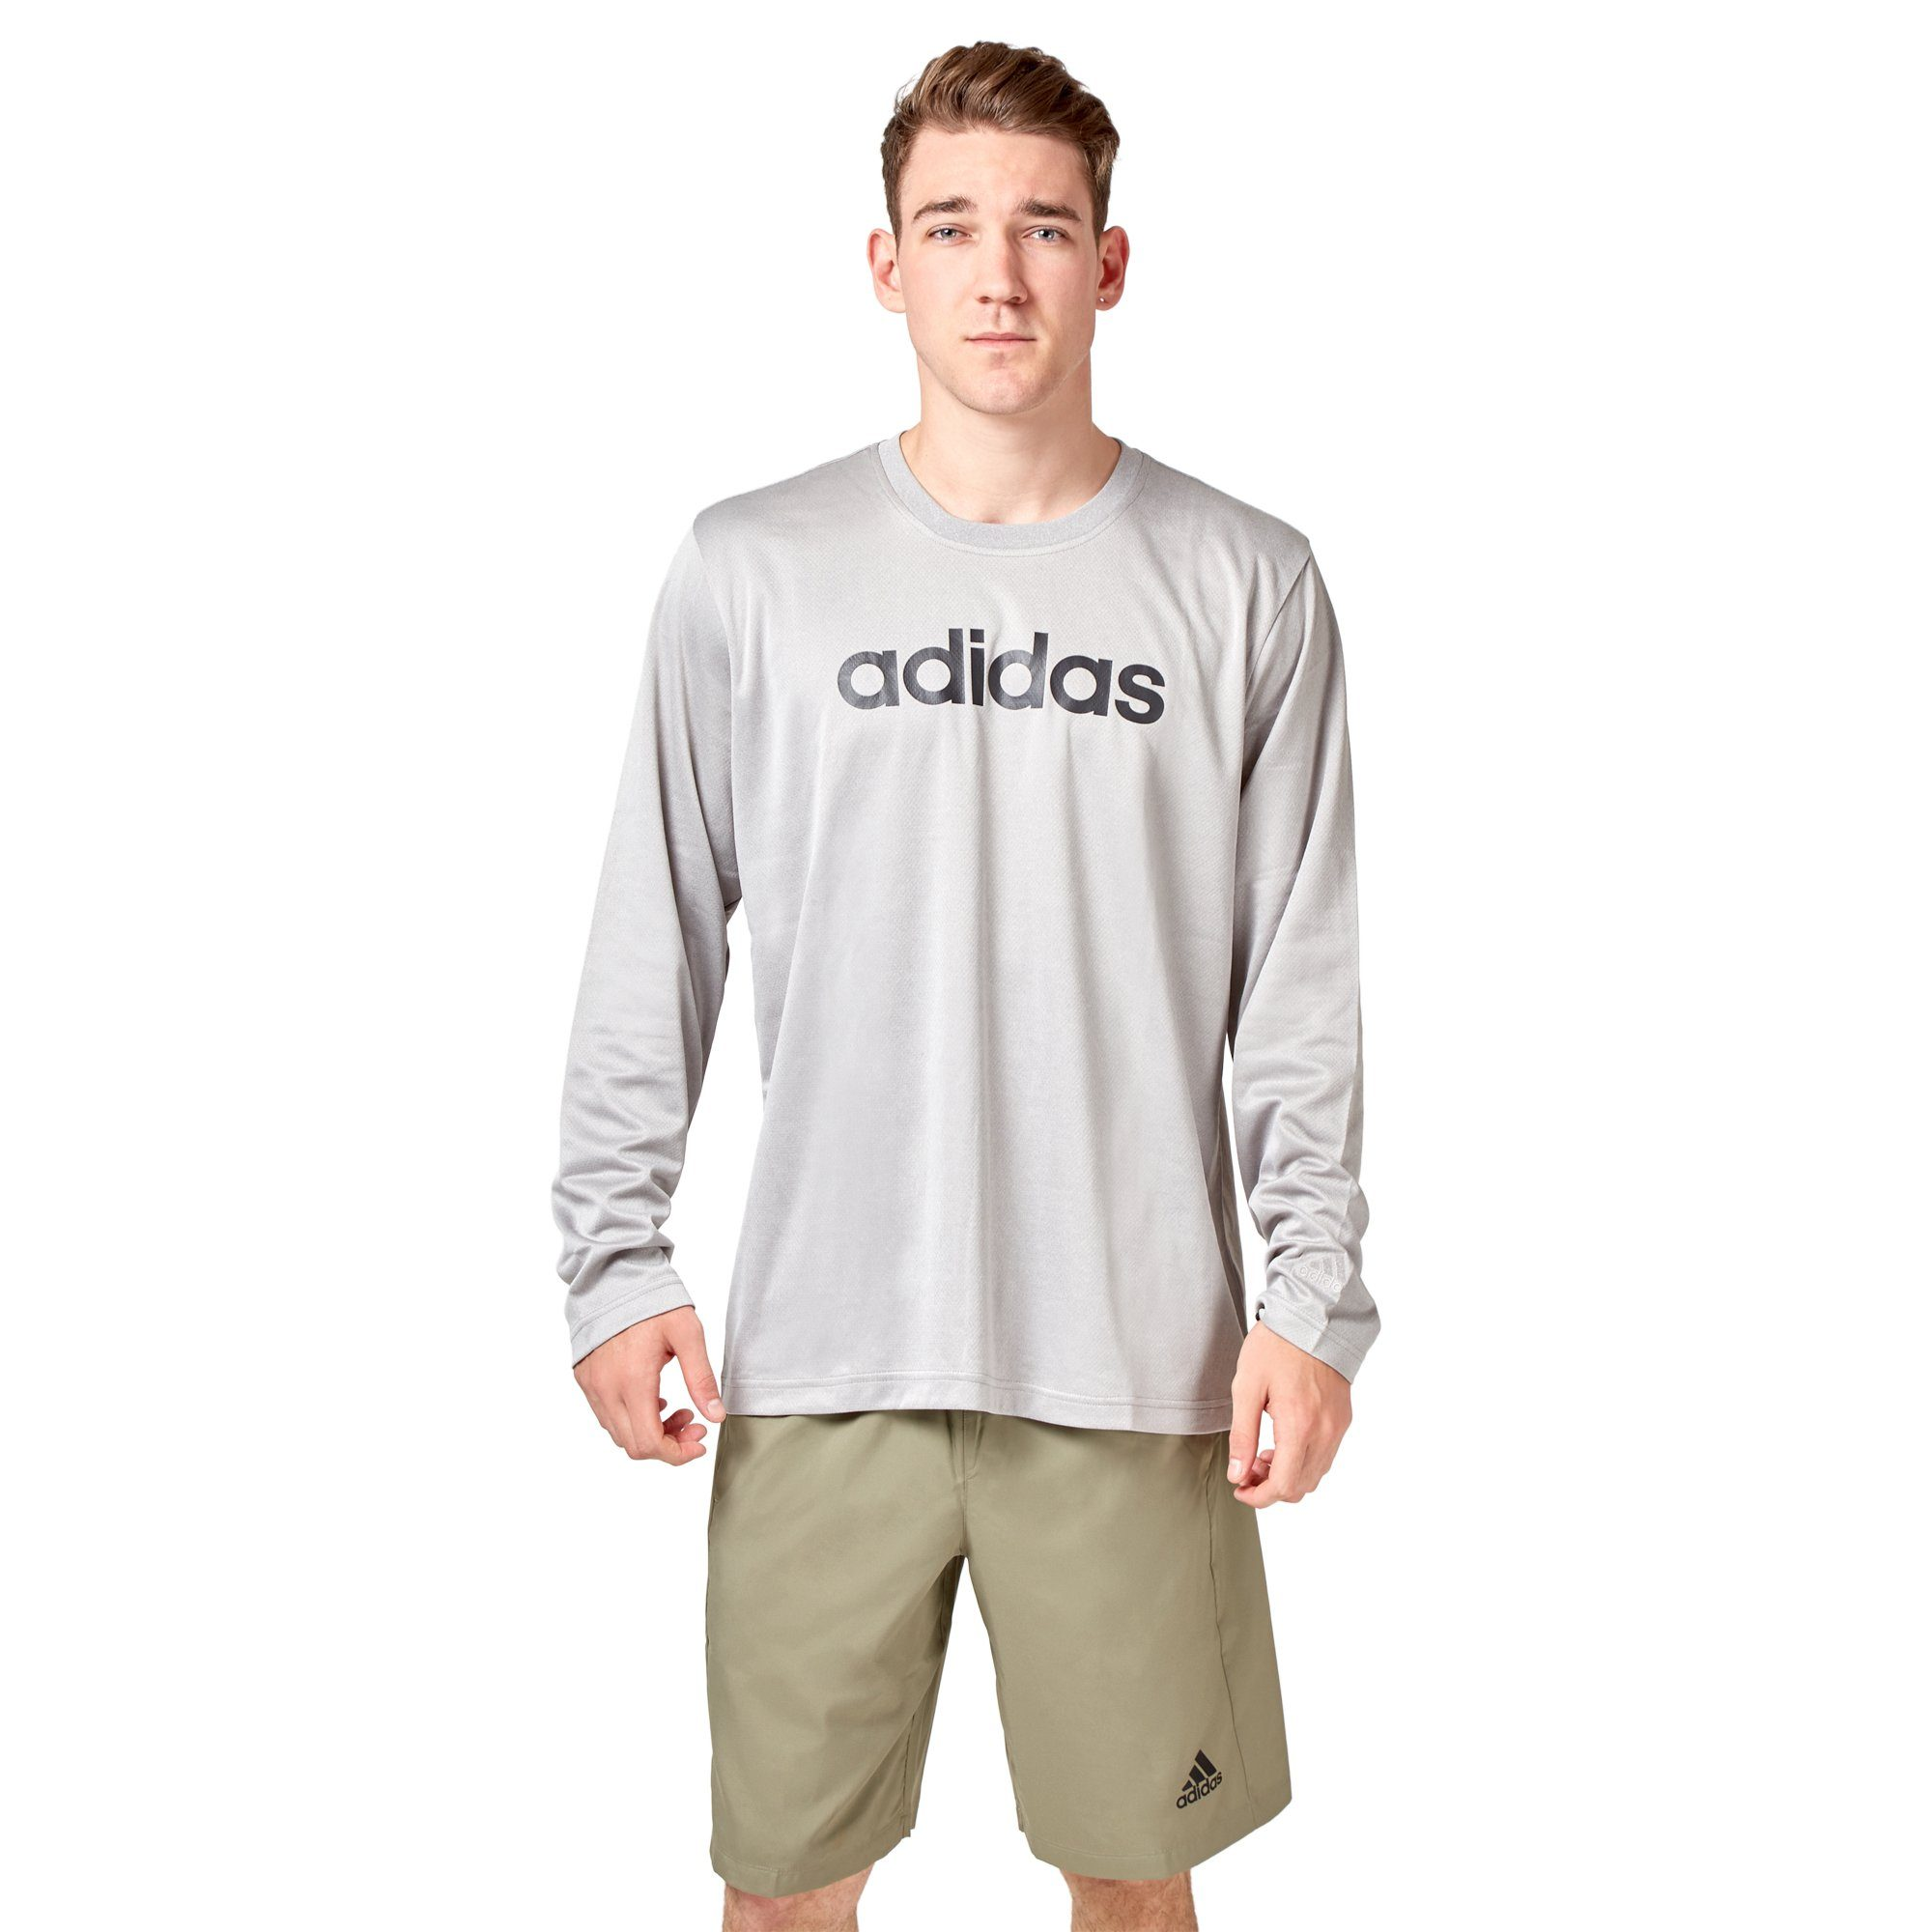 Adidas Men's Logo Long Sleeve Tee - Mid grey heather SportsPower Geelong